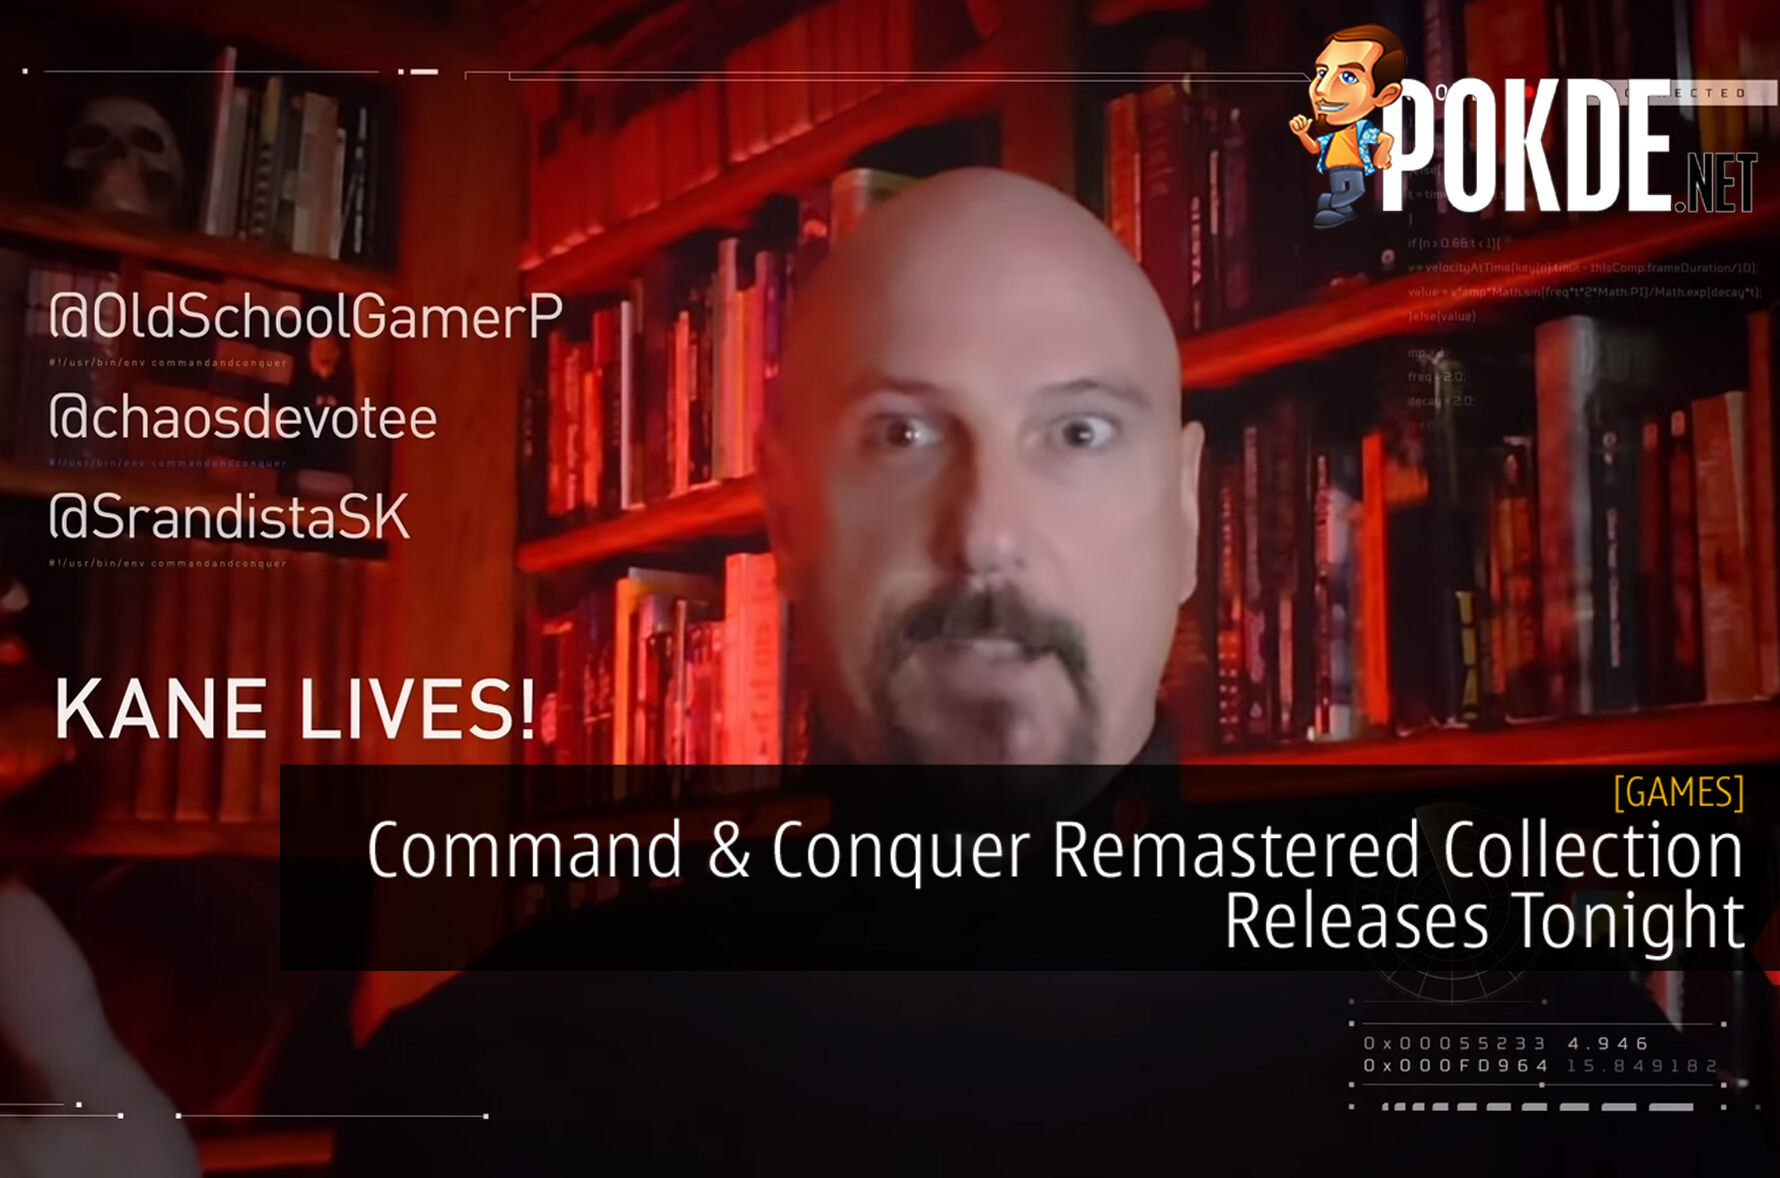 Command & Conquer Remastered Collection Releases Tonight 13